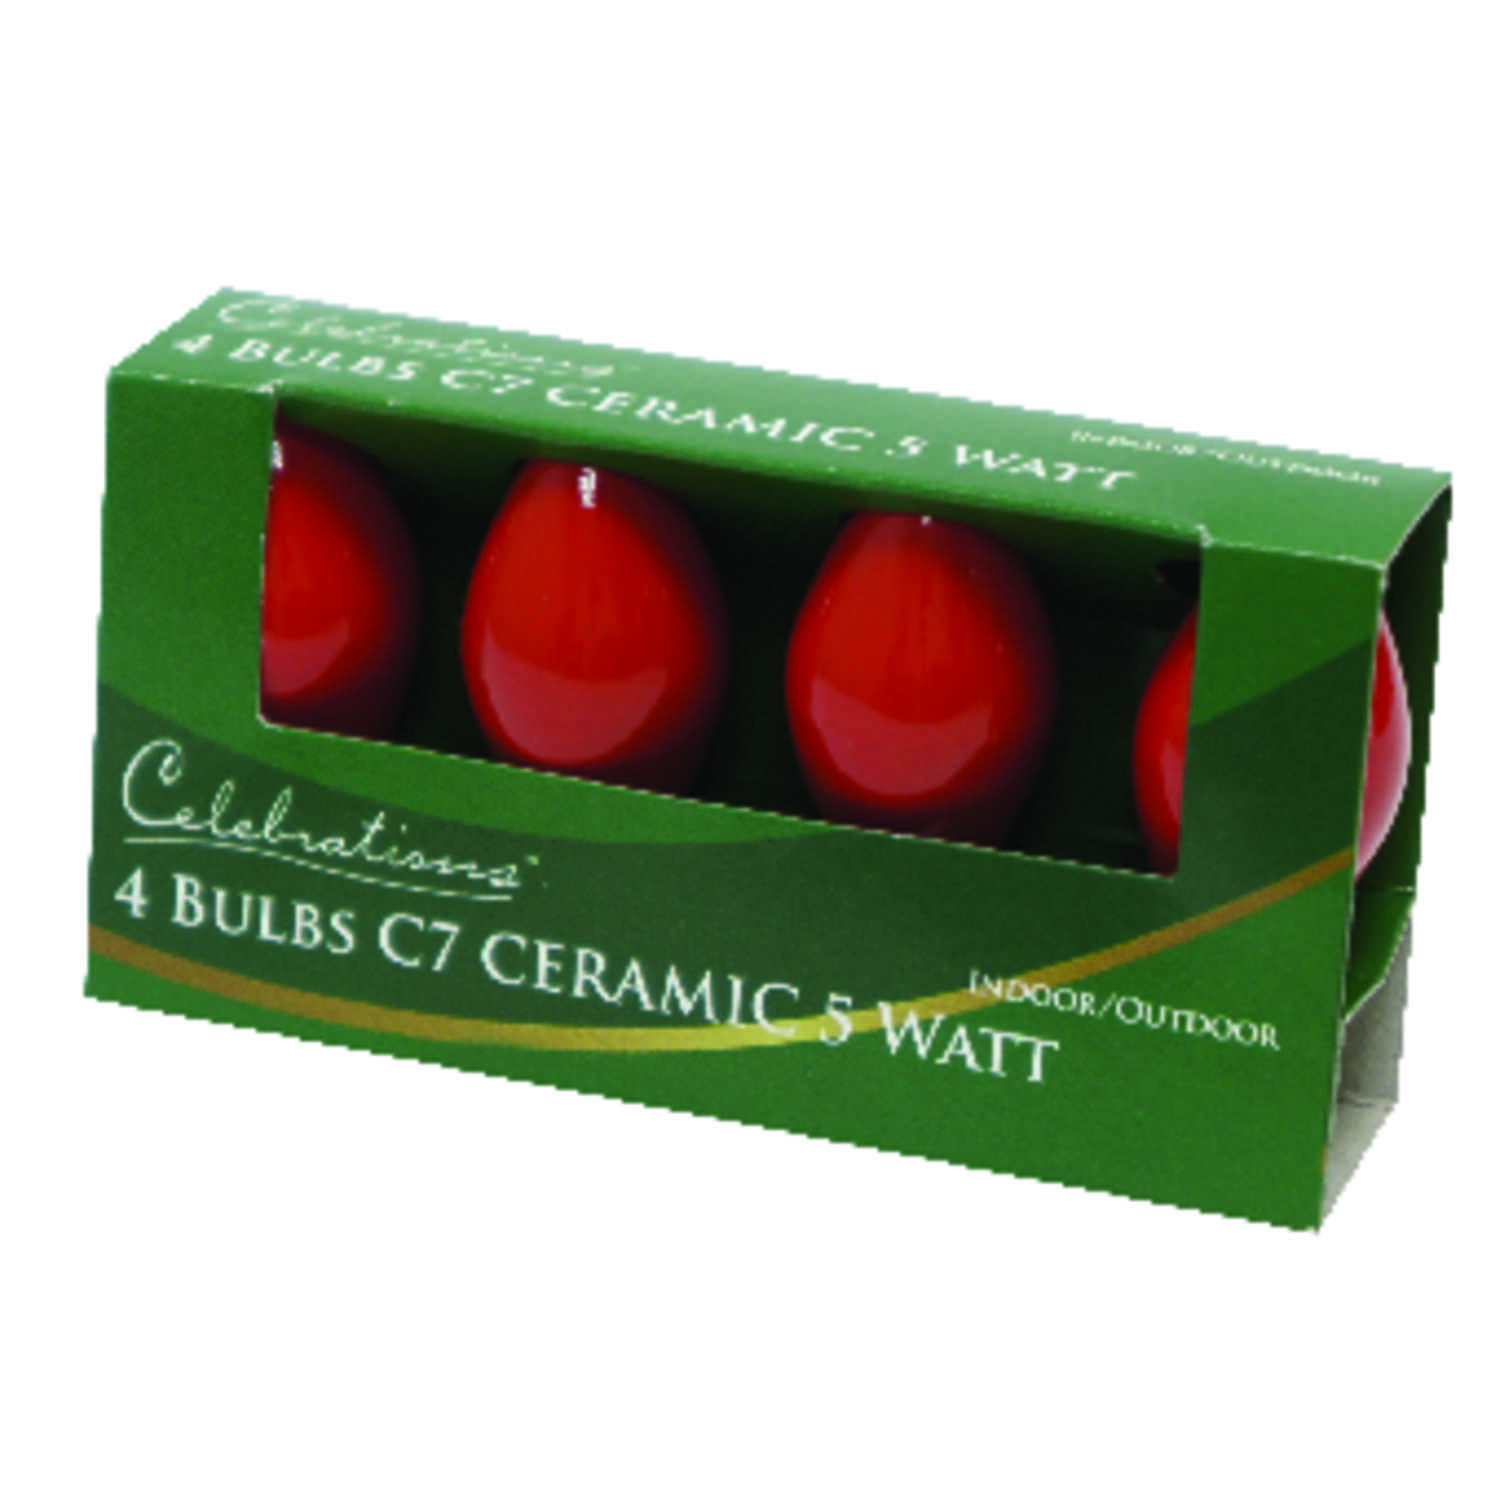 Celebrations  Incandescent  Ceramic C7  Replacement Bulb  Red  4 lights